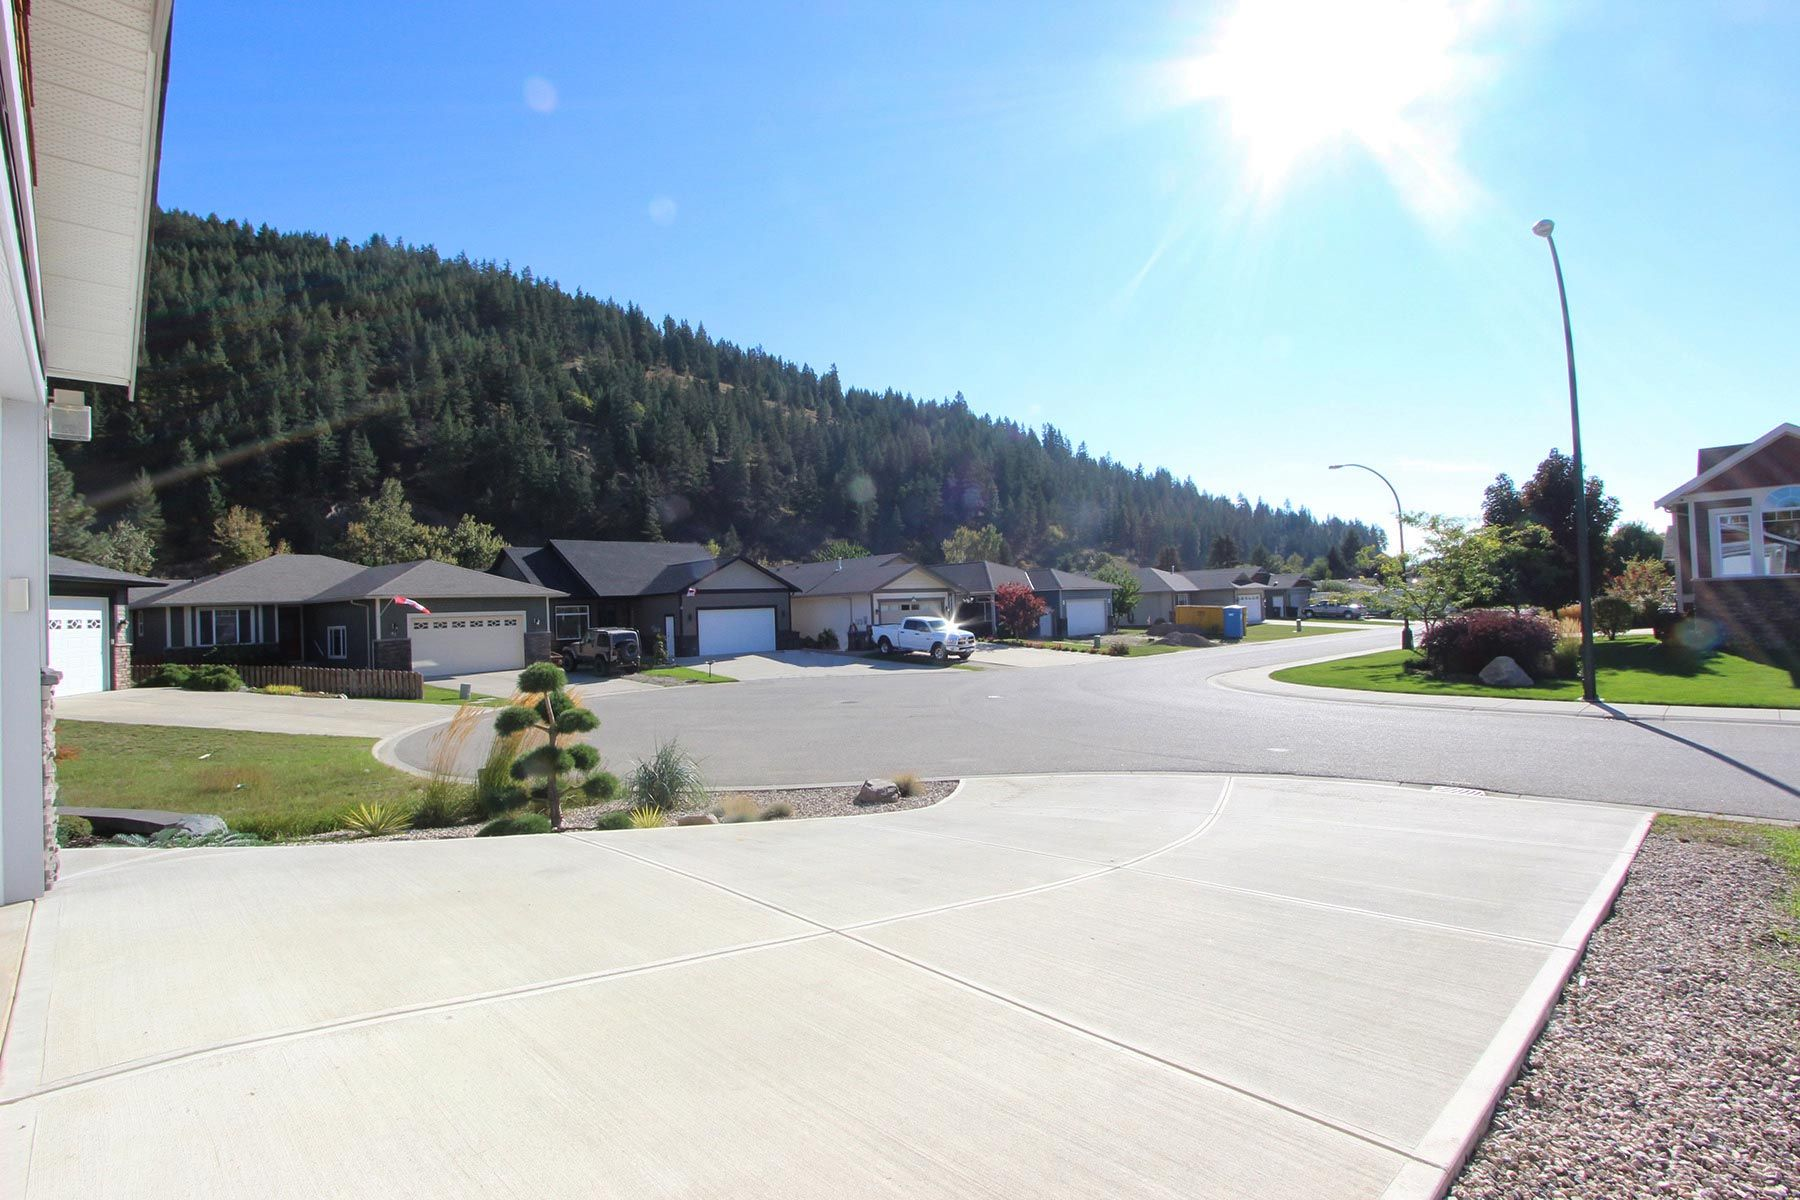 Photo 9: Photos: 199 Ash Drive in Chase: House for sale : MLS®# 10223046